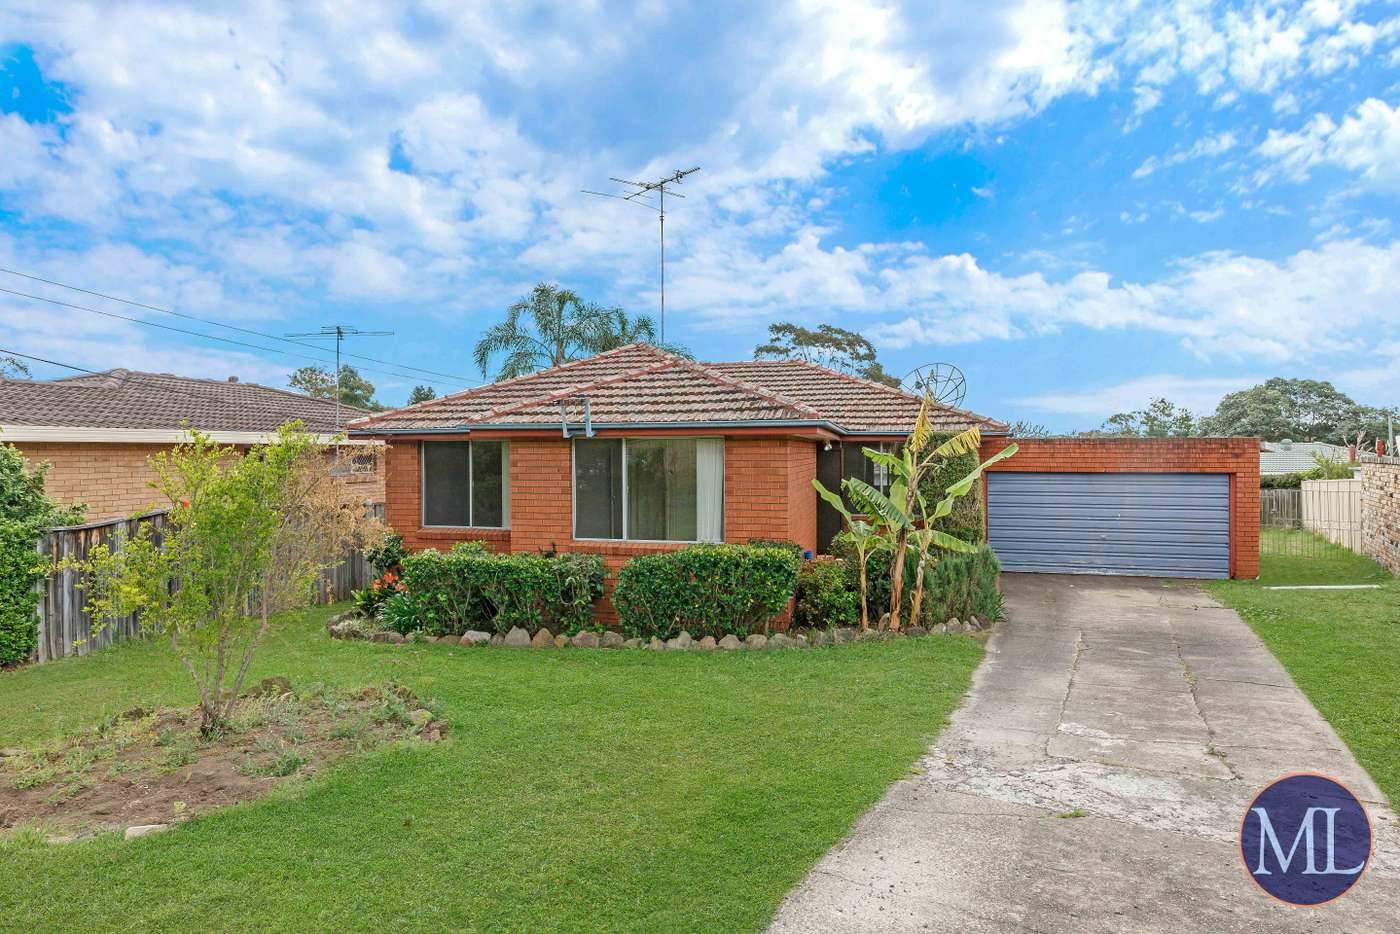 Main view of Homely house listing, 16 Mullane Avenue, Baulkham Hills NSW 2153